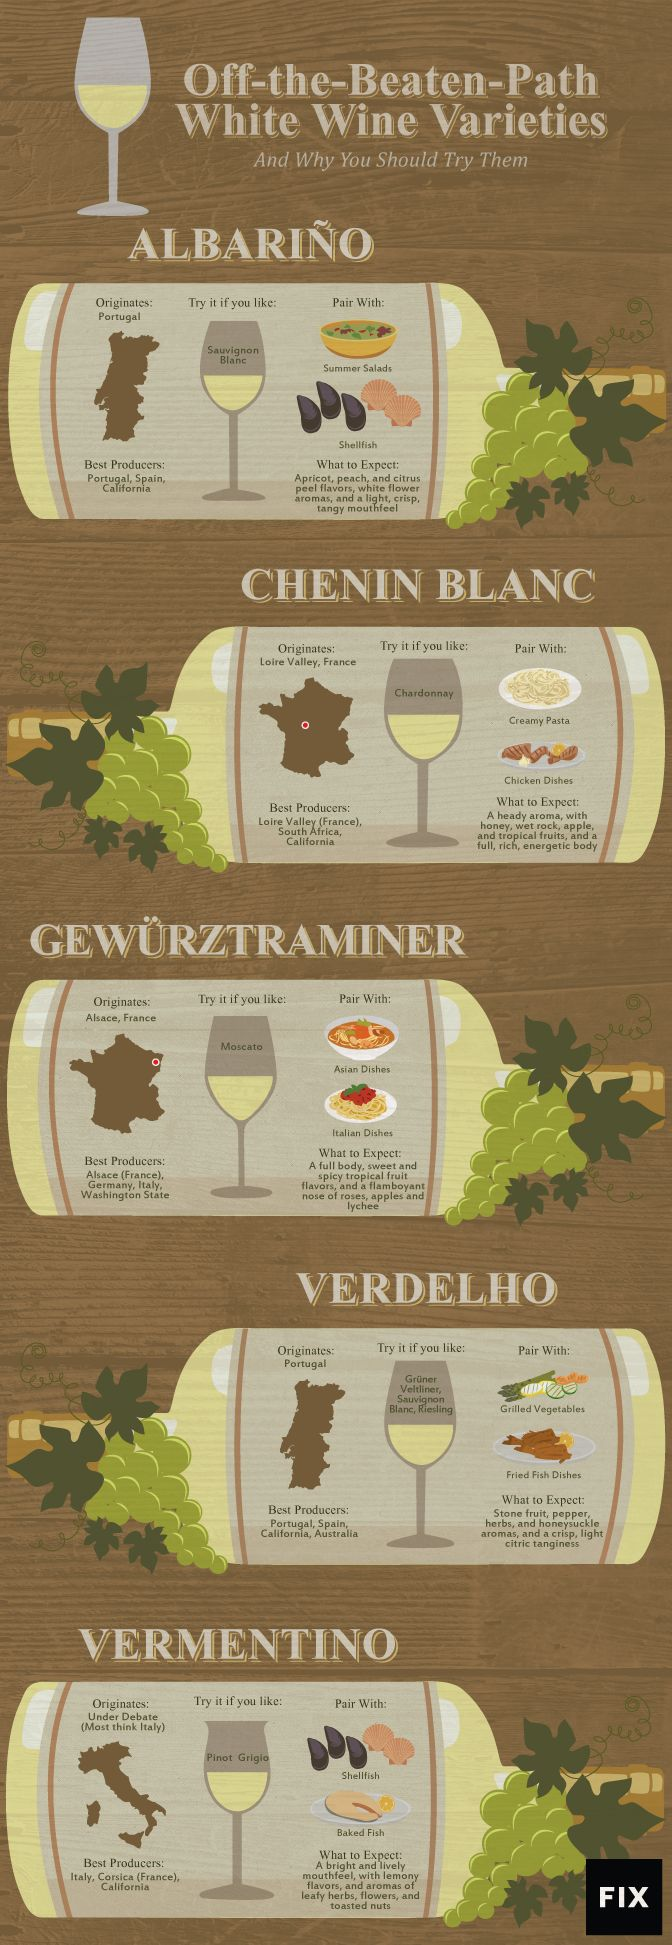 Do You Know the Basics of White Wine Varieties? (Infographic) | The Vision Times